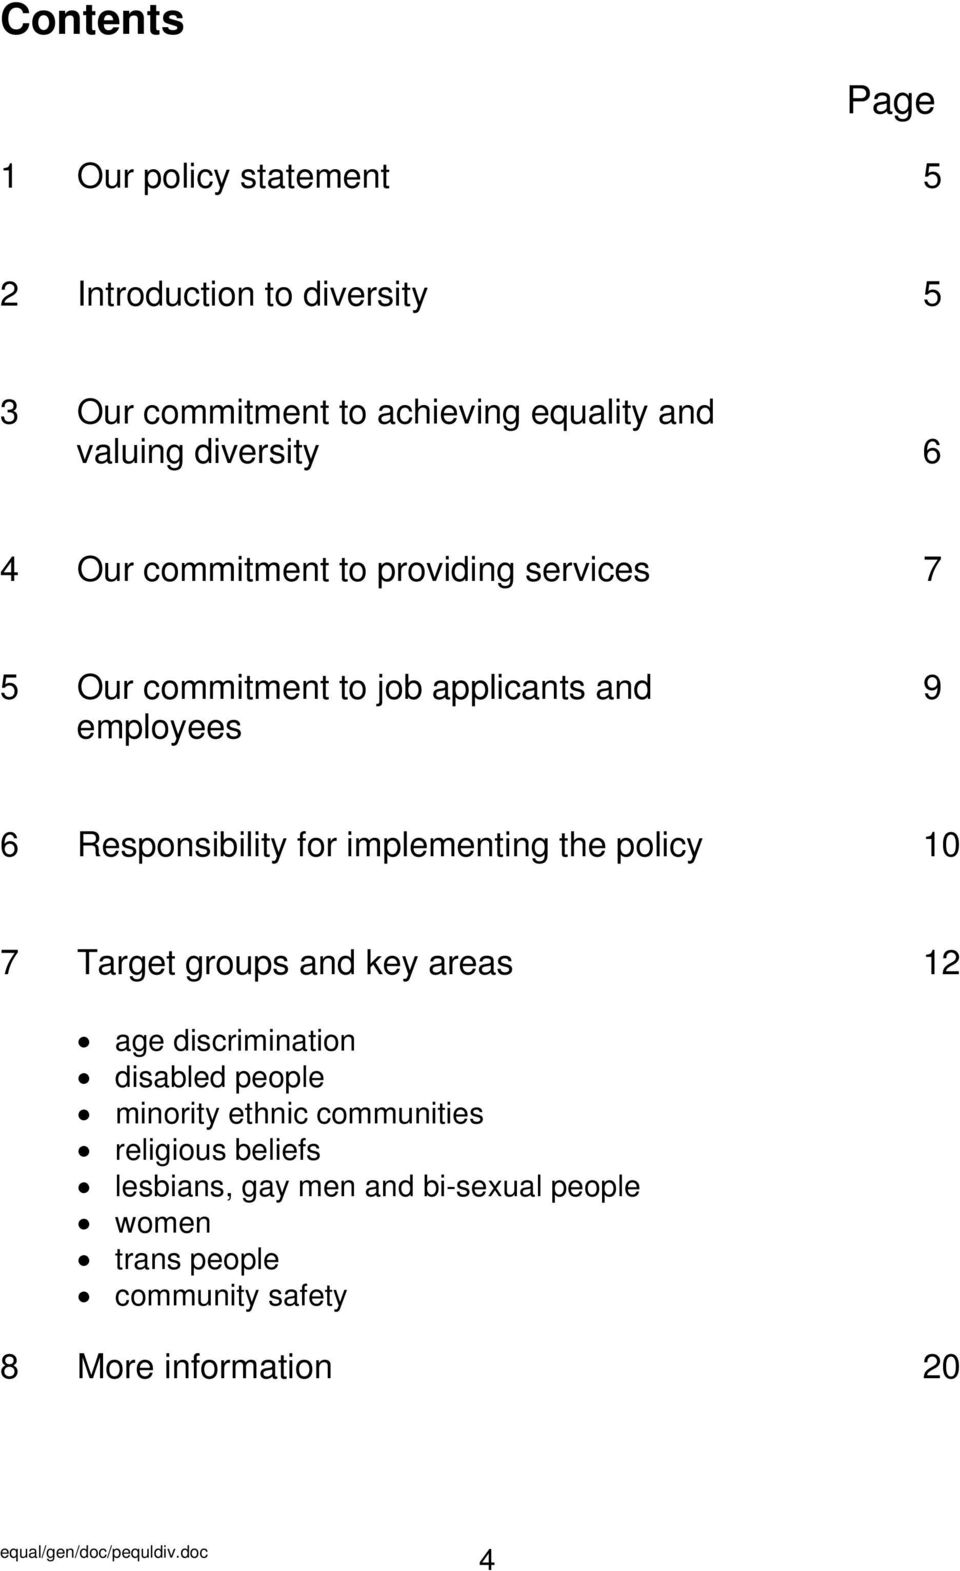 for implementing the policy 10 7 Target groups and key areas 12 age discrimination disabled people minority ethnic